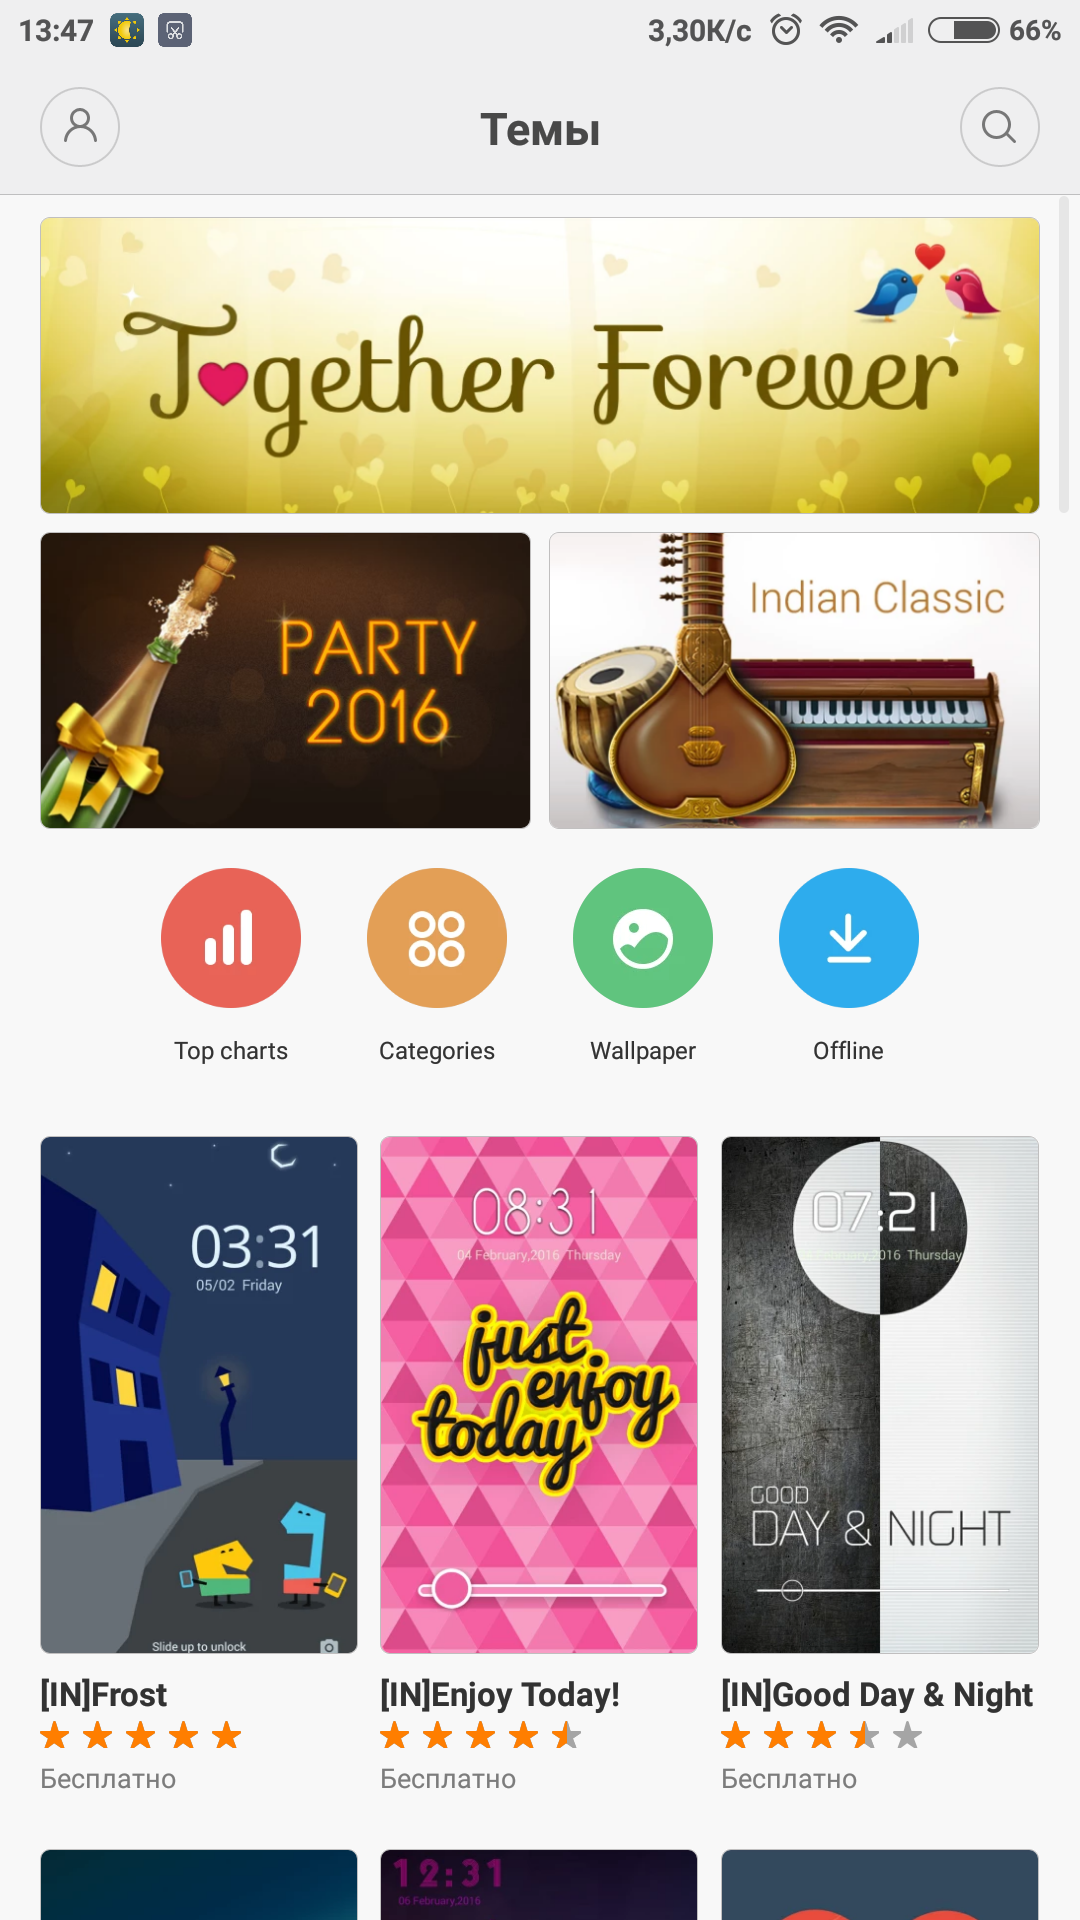 Screenshot_2016-02-13-13-47-08_com.android.thememanager.png